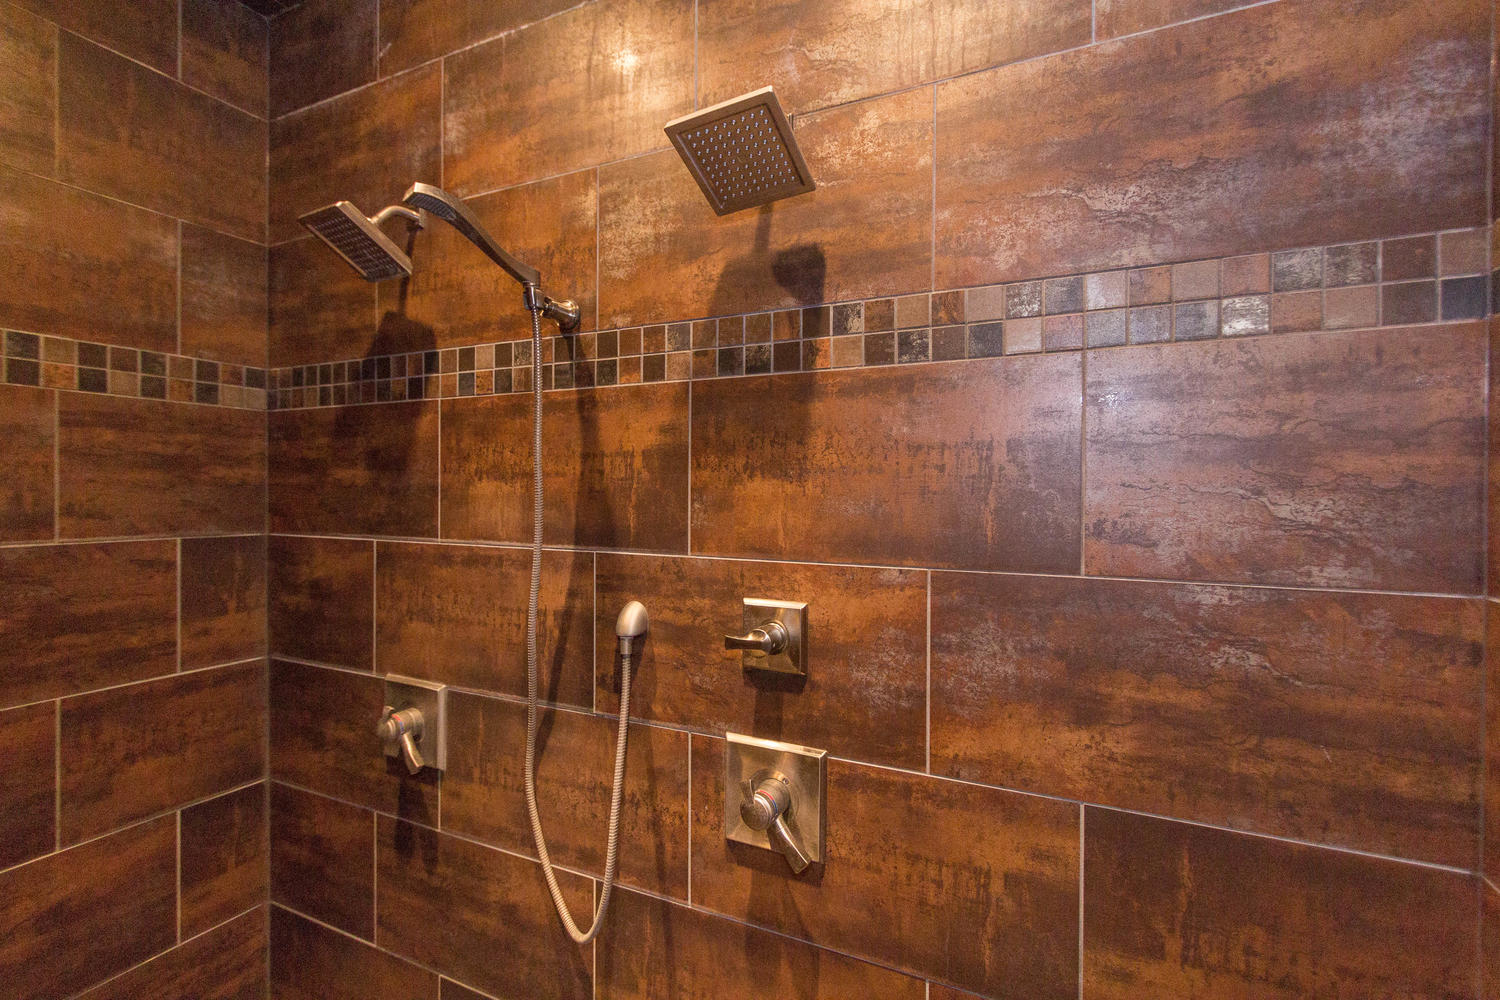 Gorgeous tile work and two shower heads.  Room for a party in here!